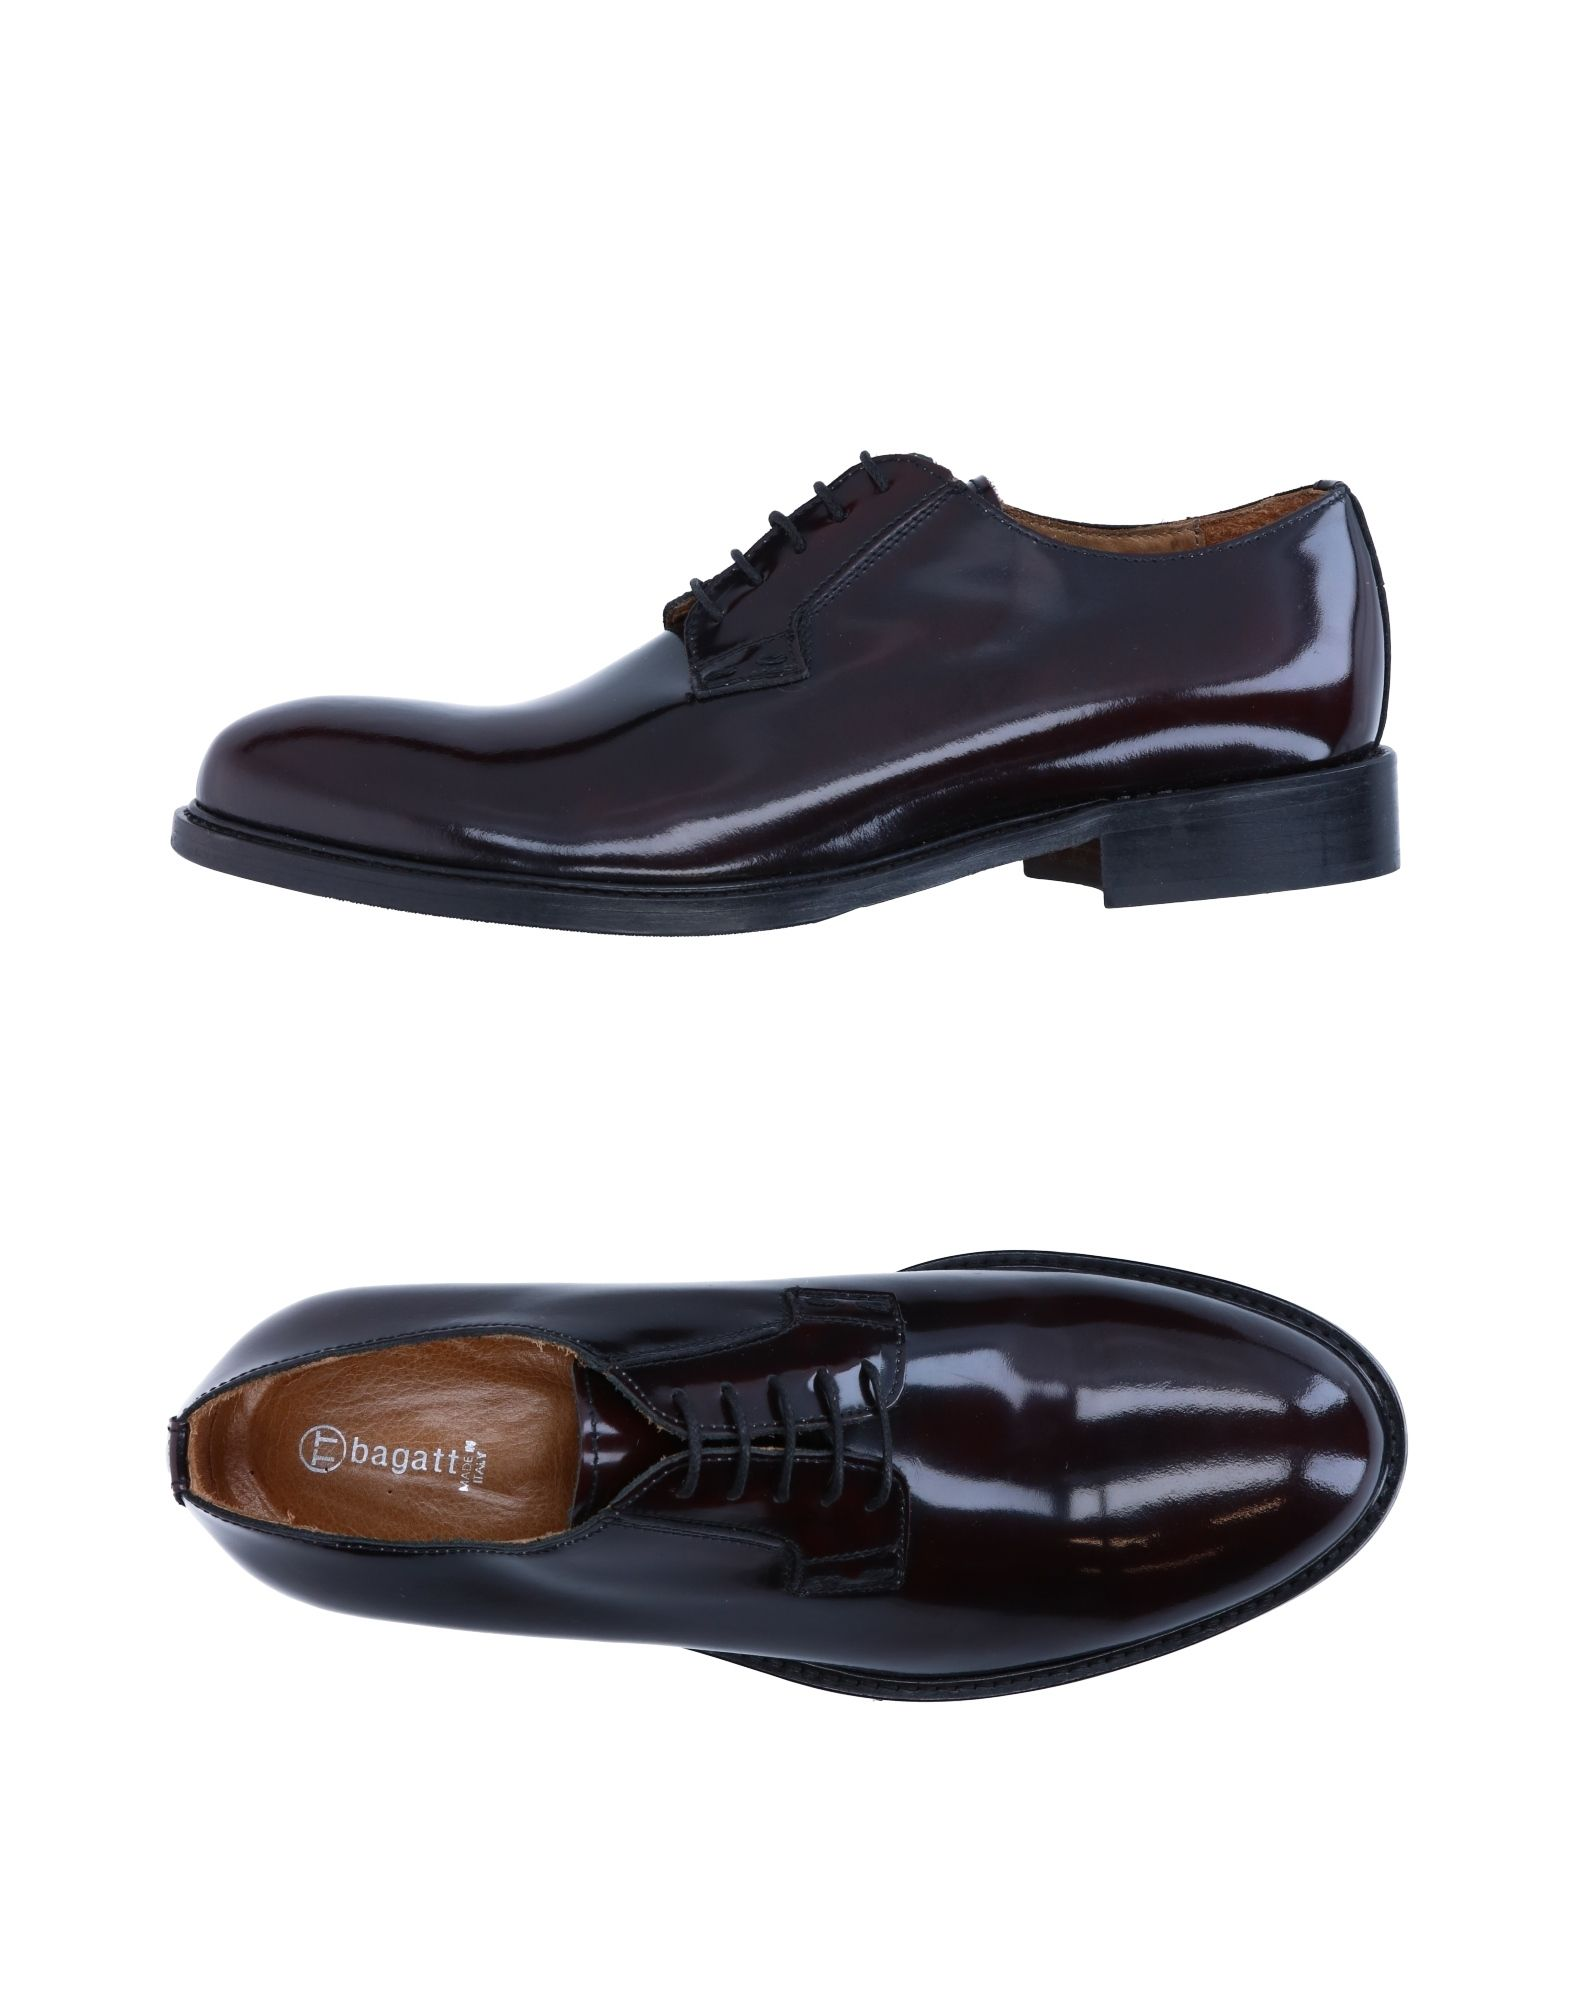 CHAUSSURES - BottinesRenoma